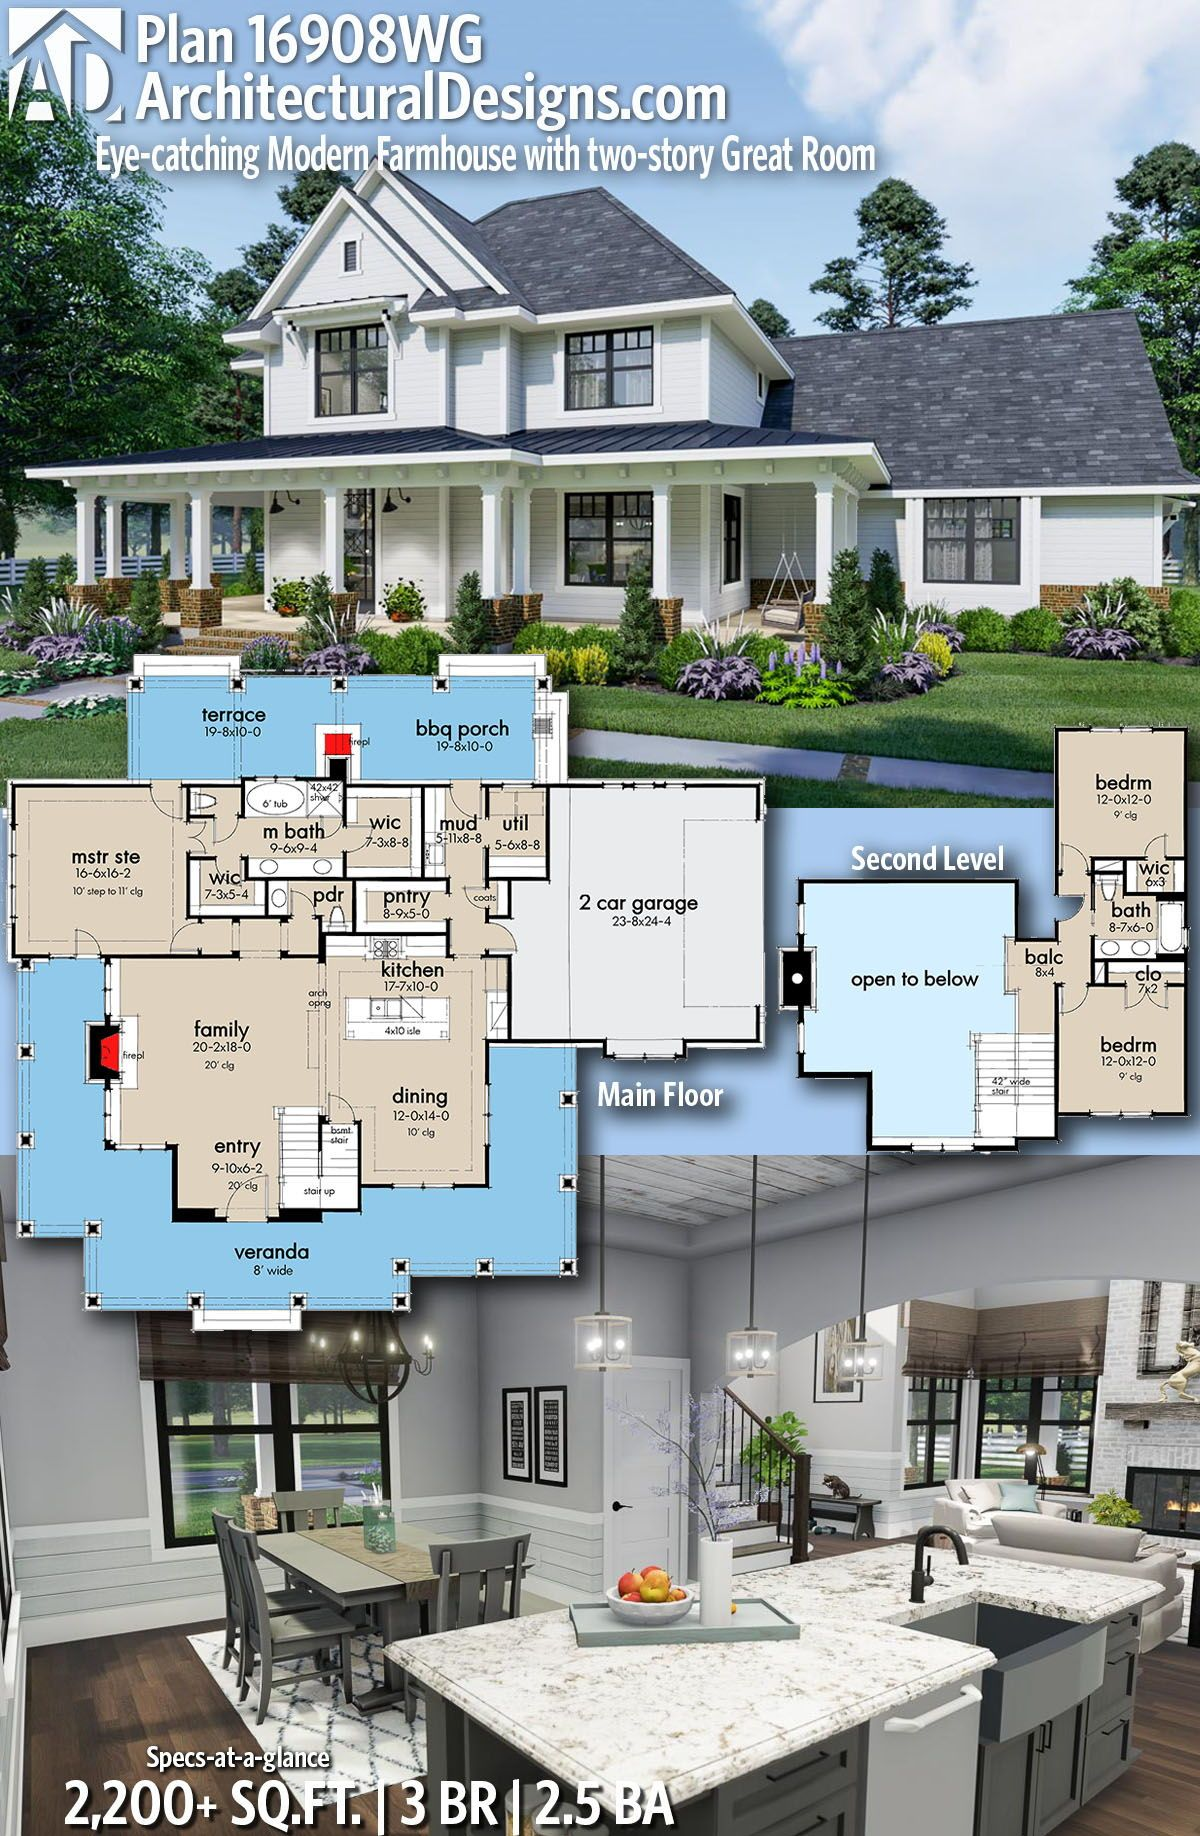 Plan 16908wg Eye Catching Modern Farmhouse With Two Story Great Room Modern Farmhouse Plans Farmhouse Plans Architectural Design House Plans